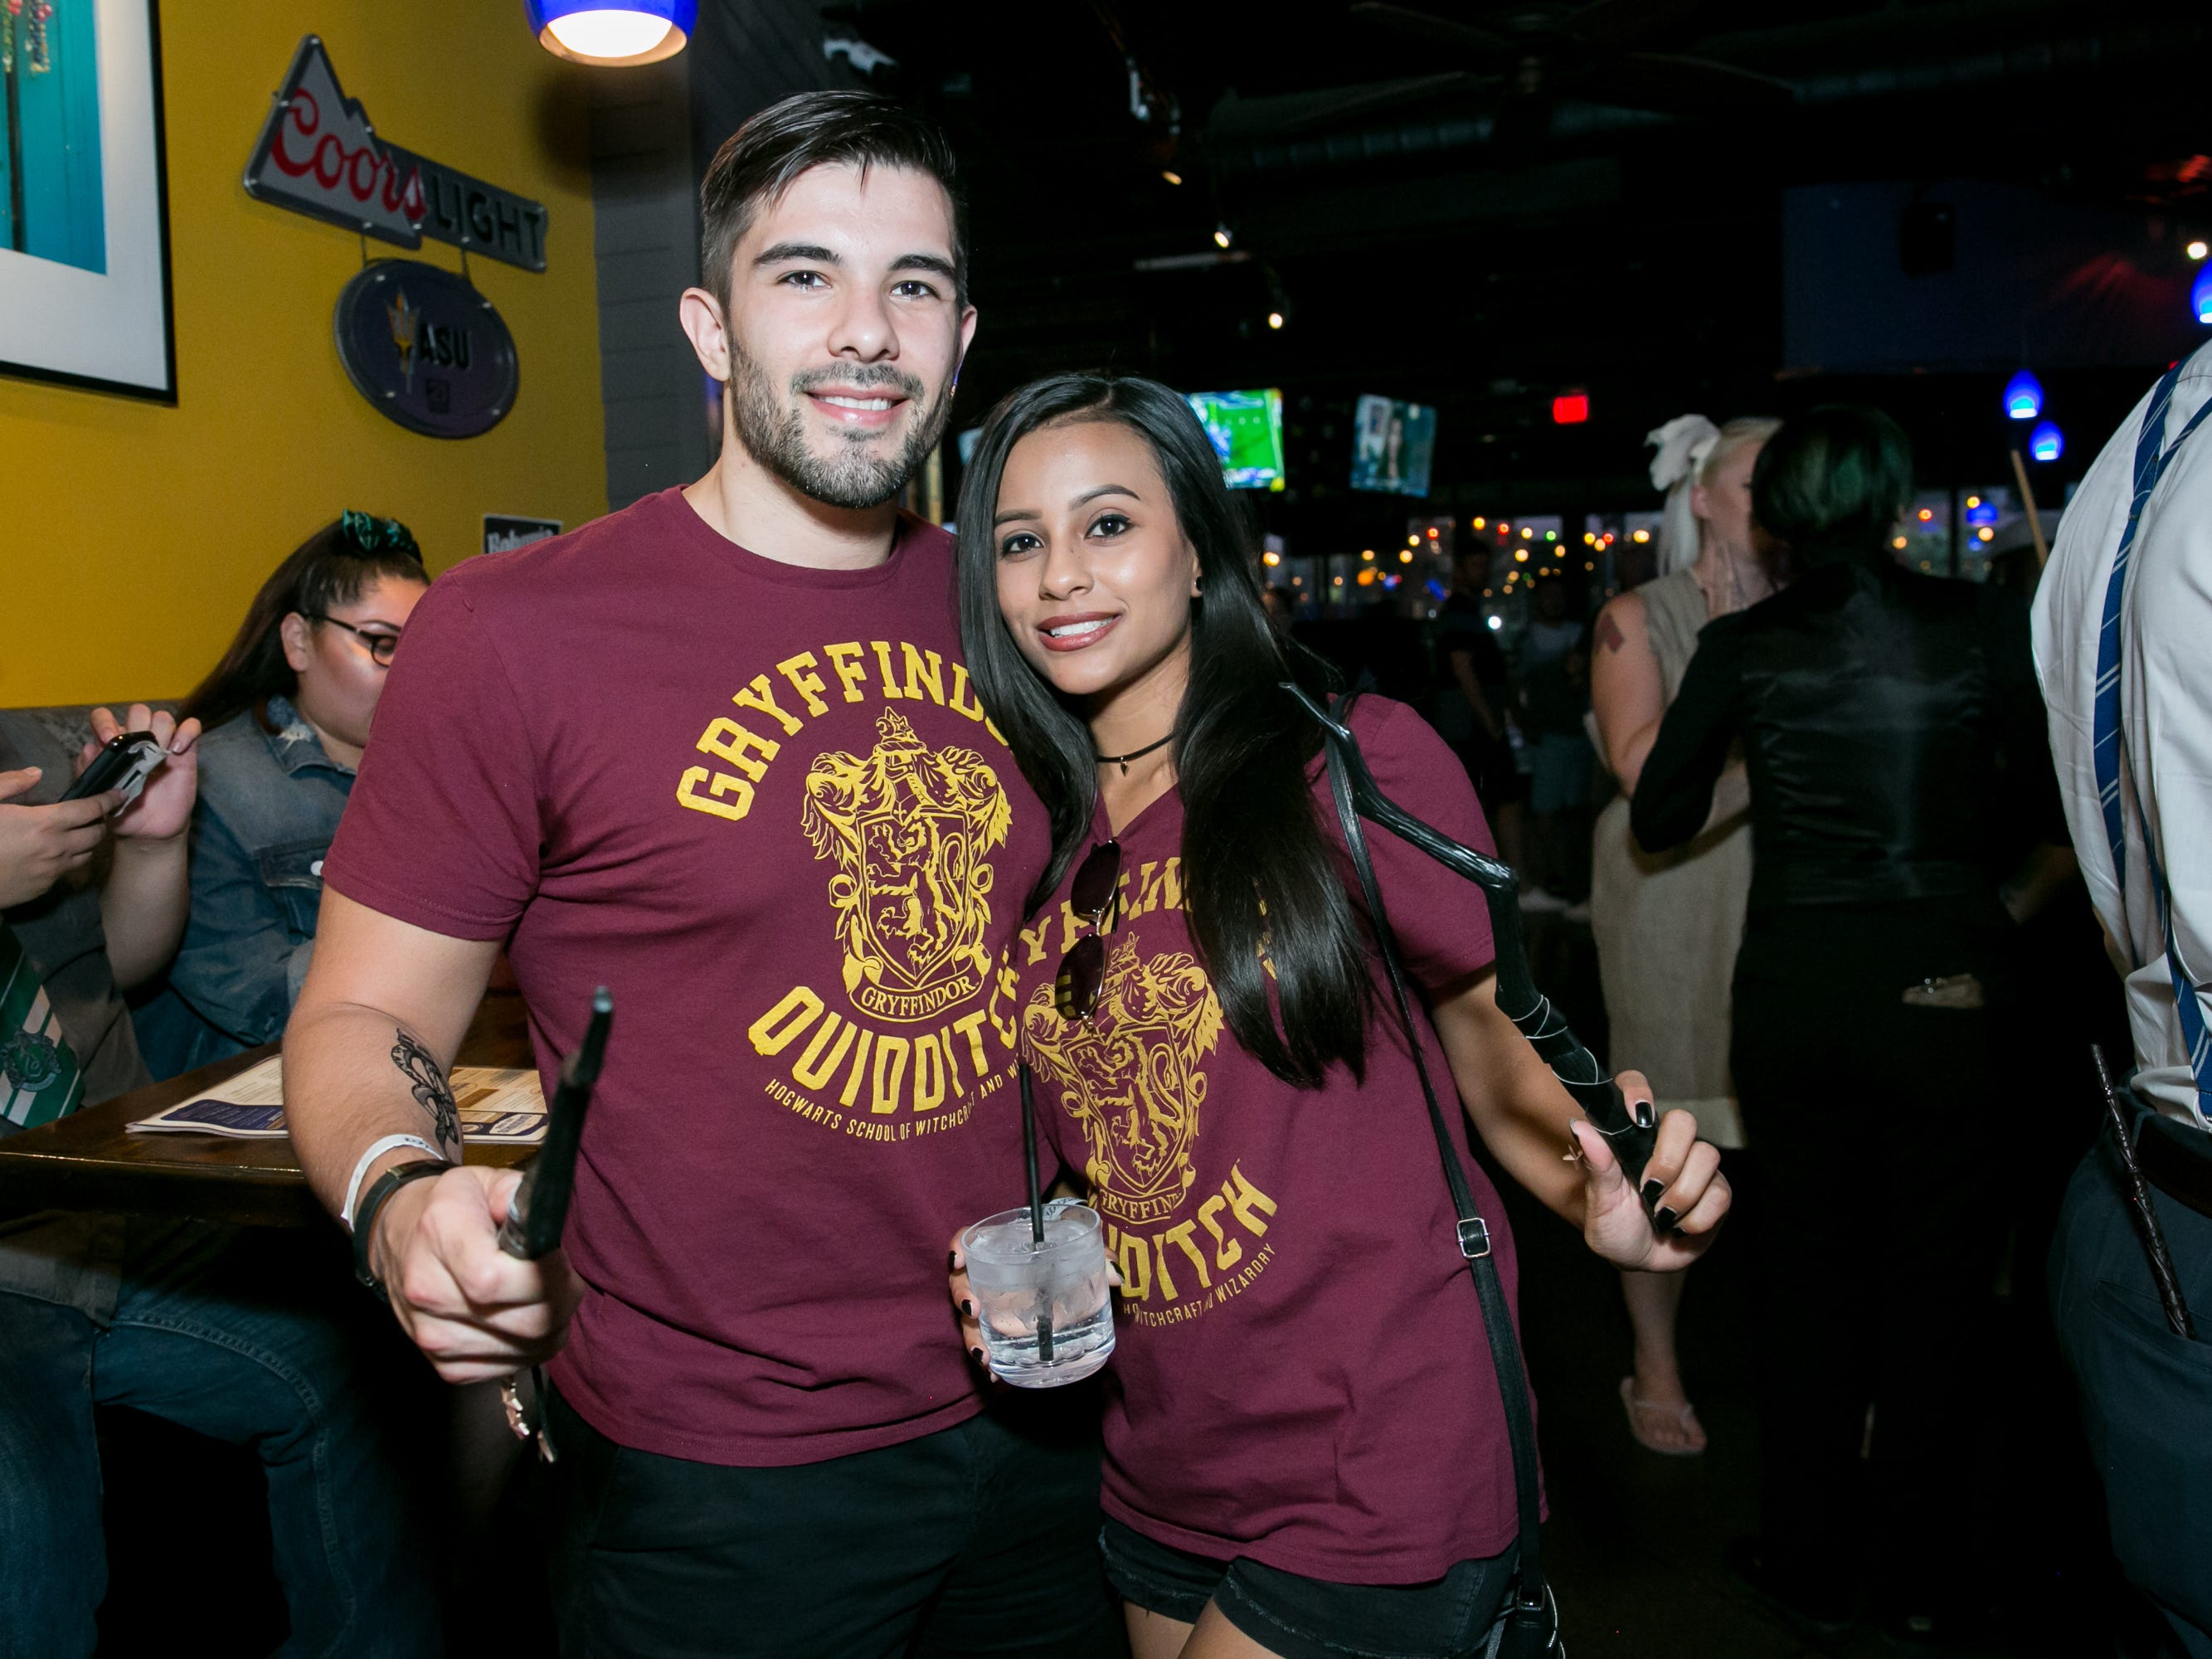 These Gryffindors showed off their great wands at Fat Tuesday during the Wizards Bar Crawl in Tempe on Saturday, September 22, 2018.